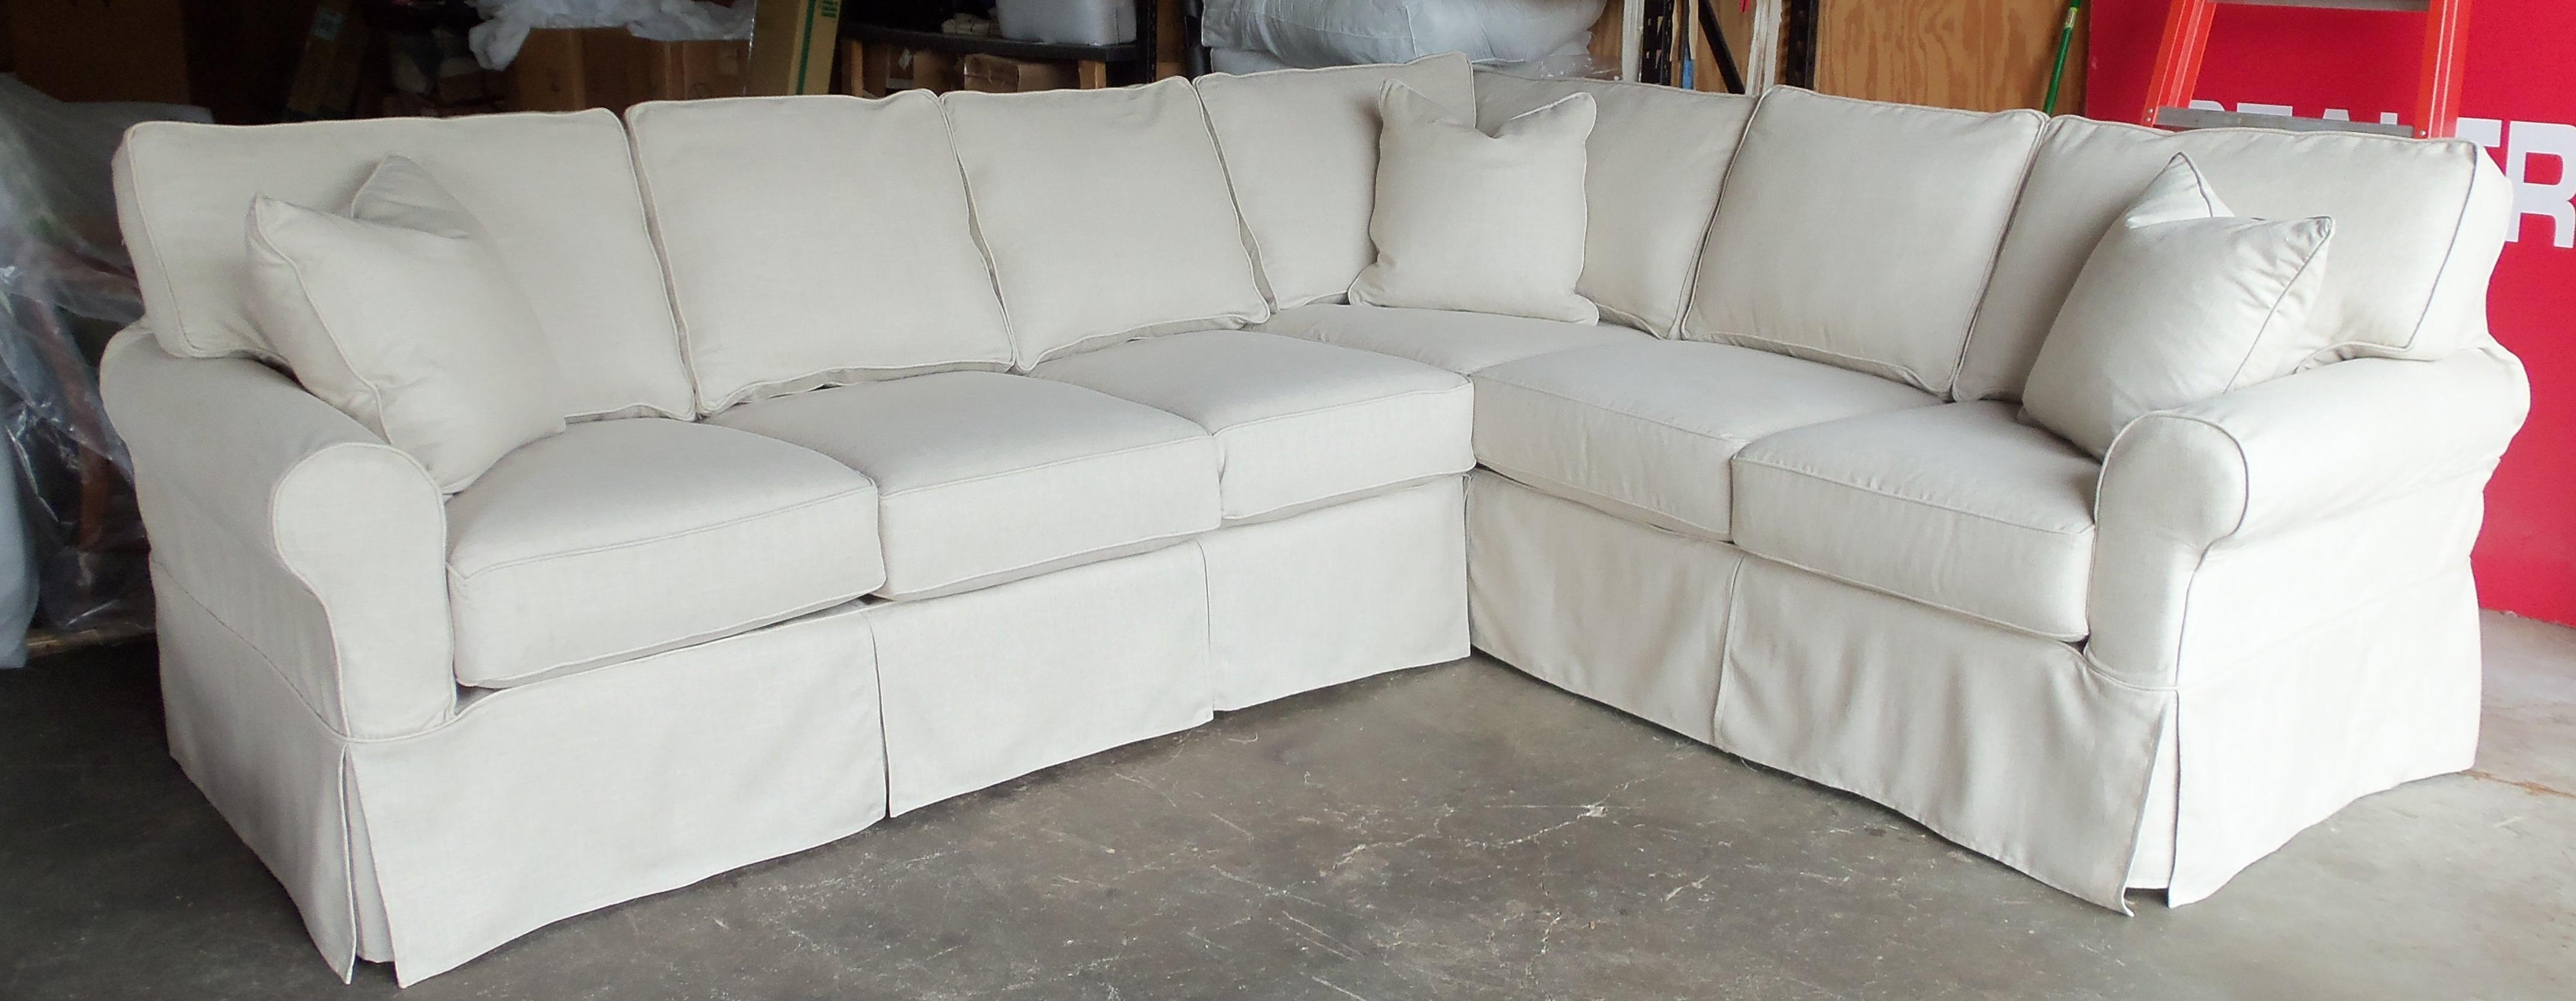 Inspirations: Interesting Furniture Sectional Sofa Slipcovers For With Sectional Sofa Covers (View 2 of 20)